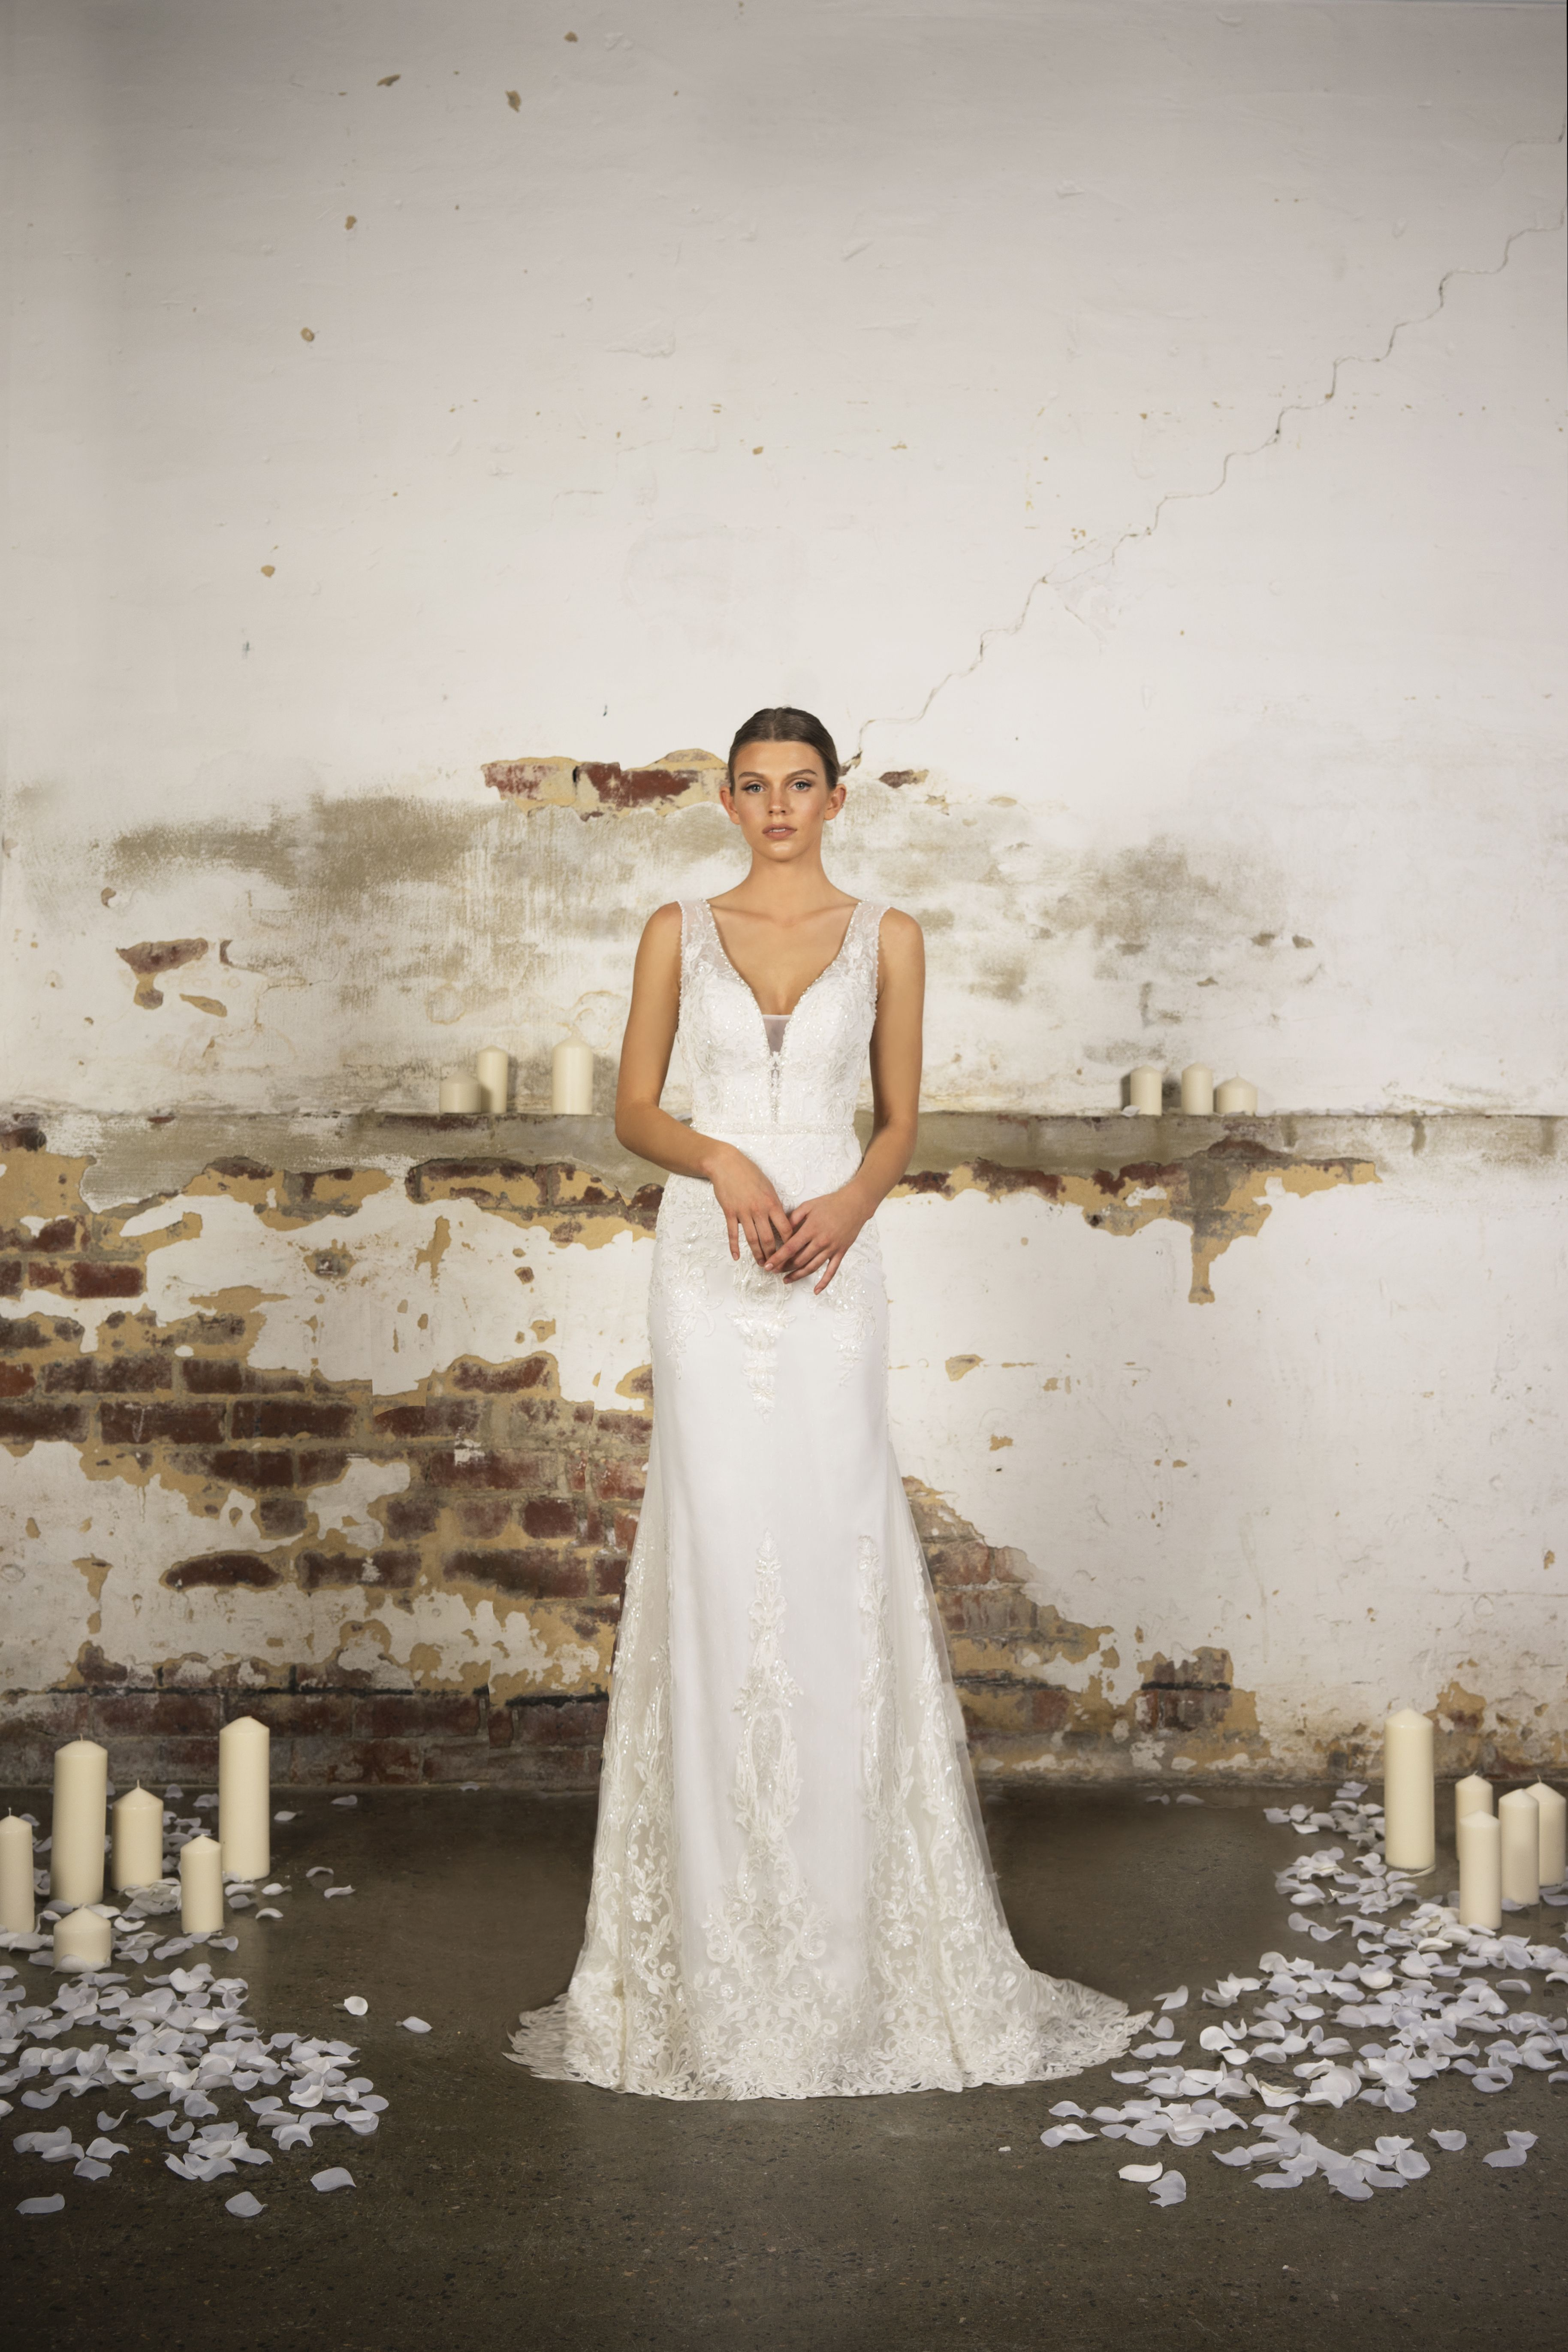 Amy's wedding dress  CZ uc  Cizzy Bridal  Pinterest  Debutante  years and Gowns